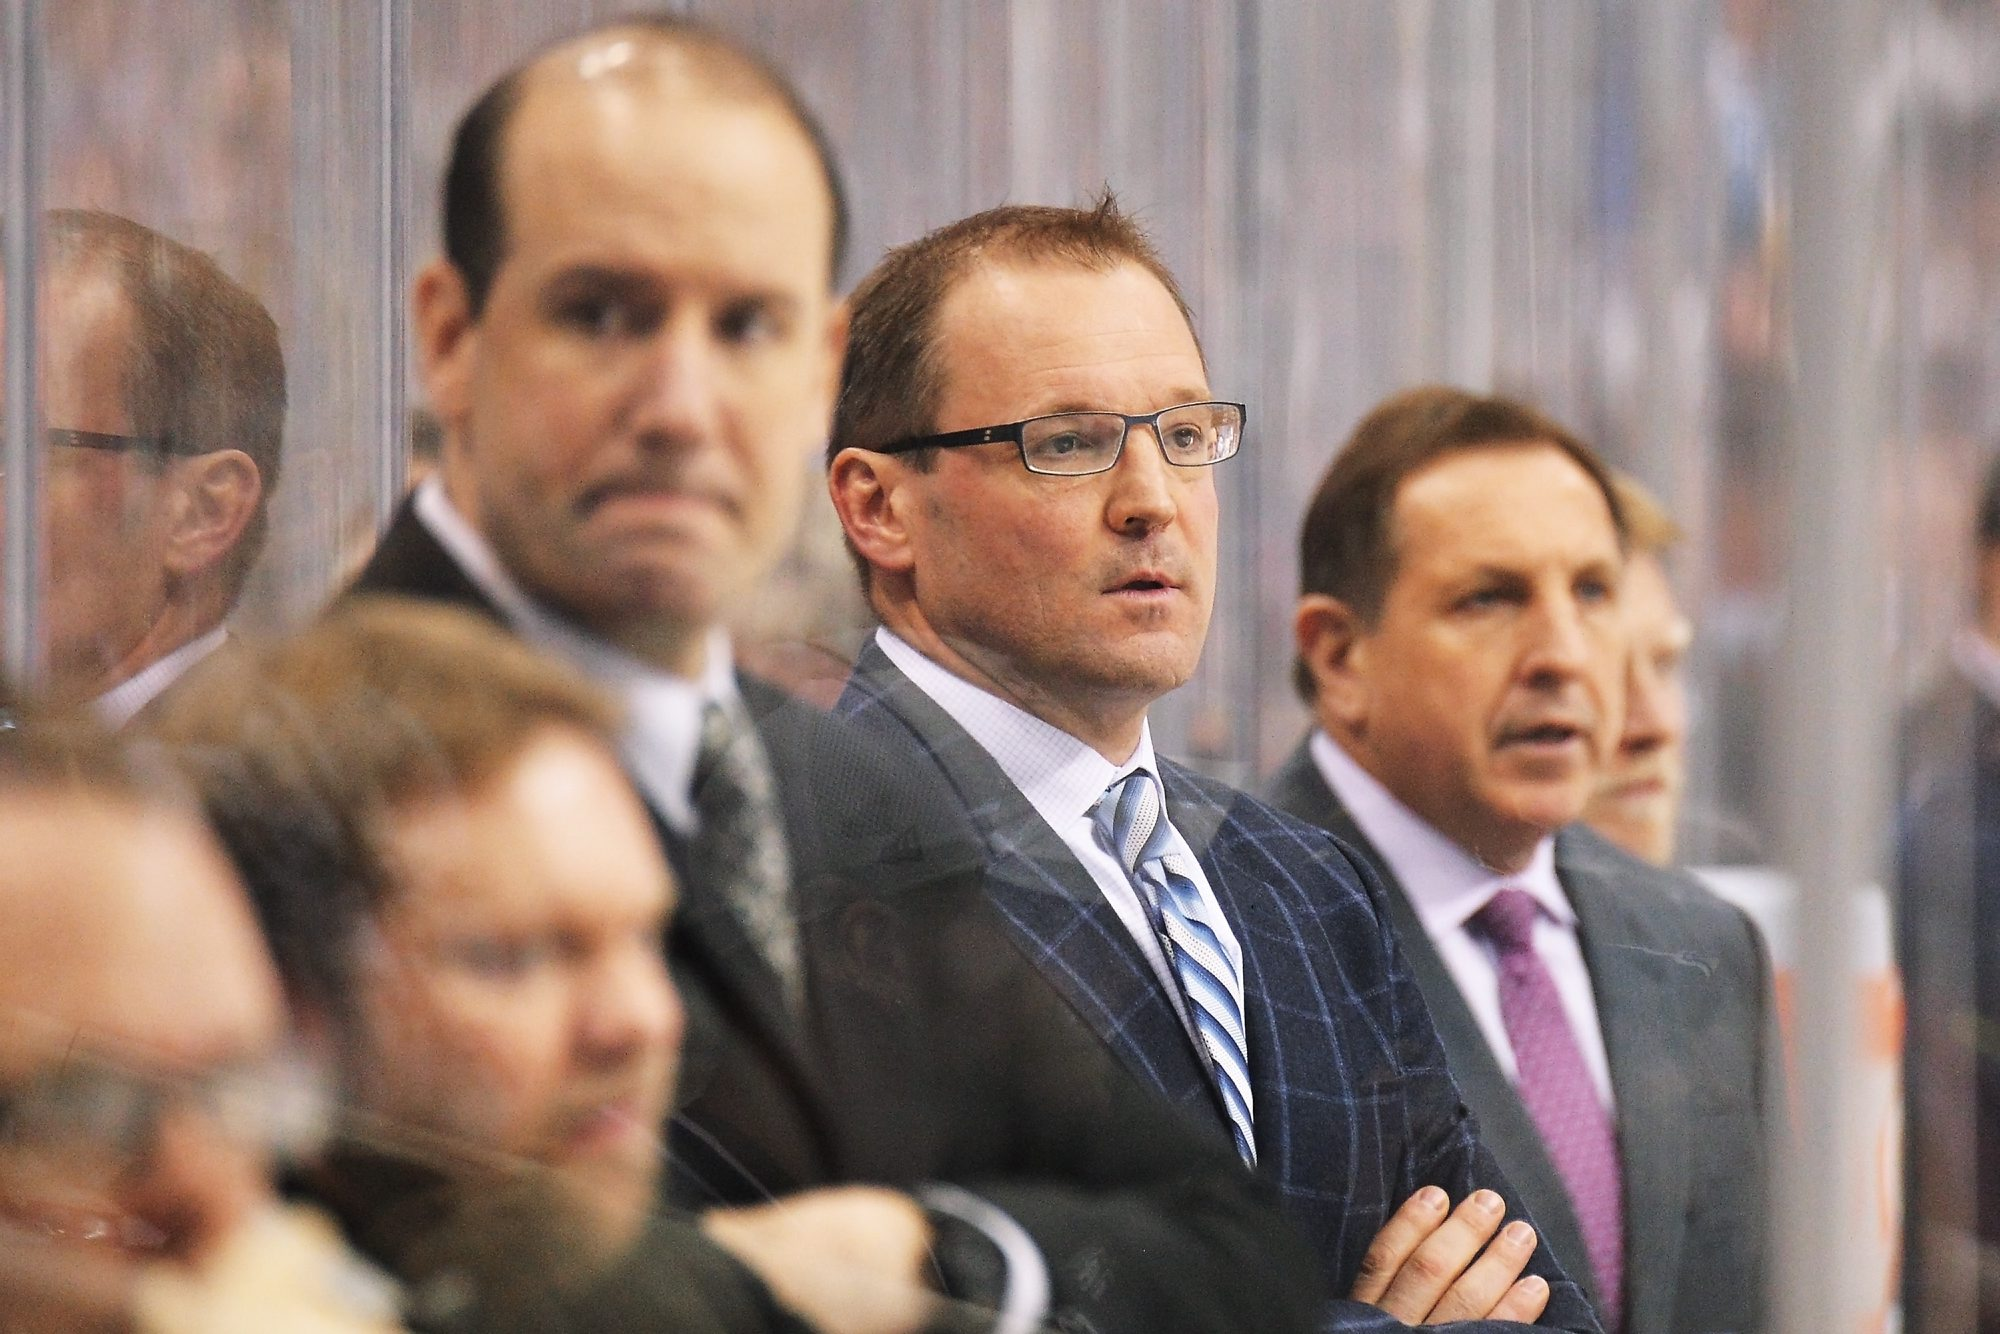 Dan Bylsma did not coach this season after his dismissal by the Pittsburgh Penguins.